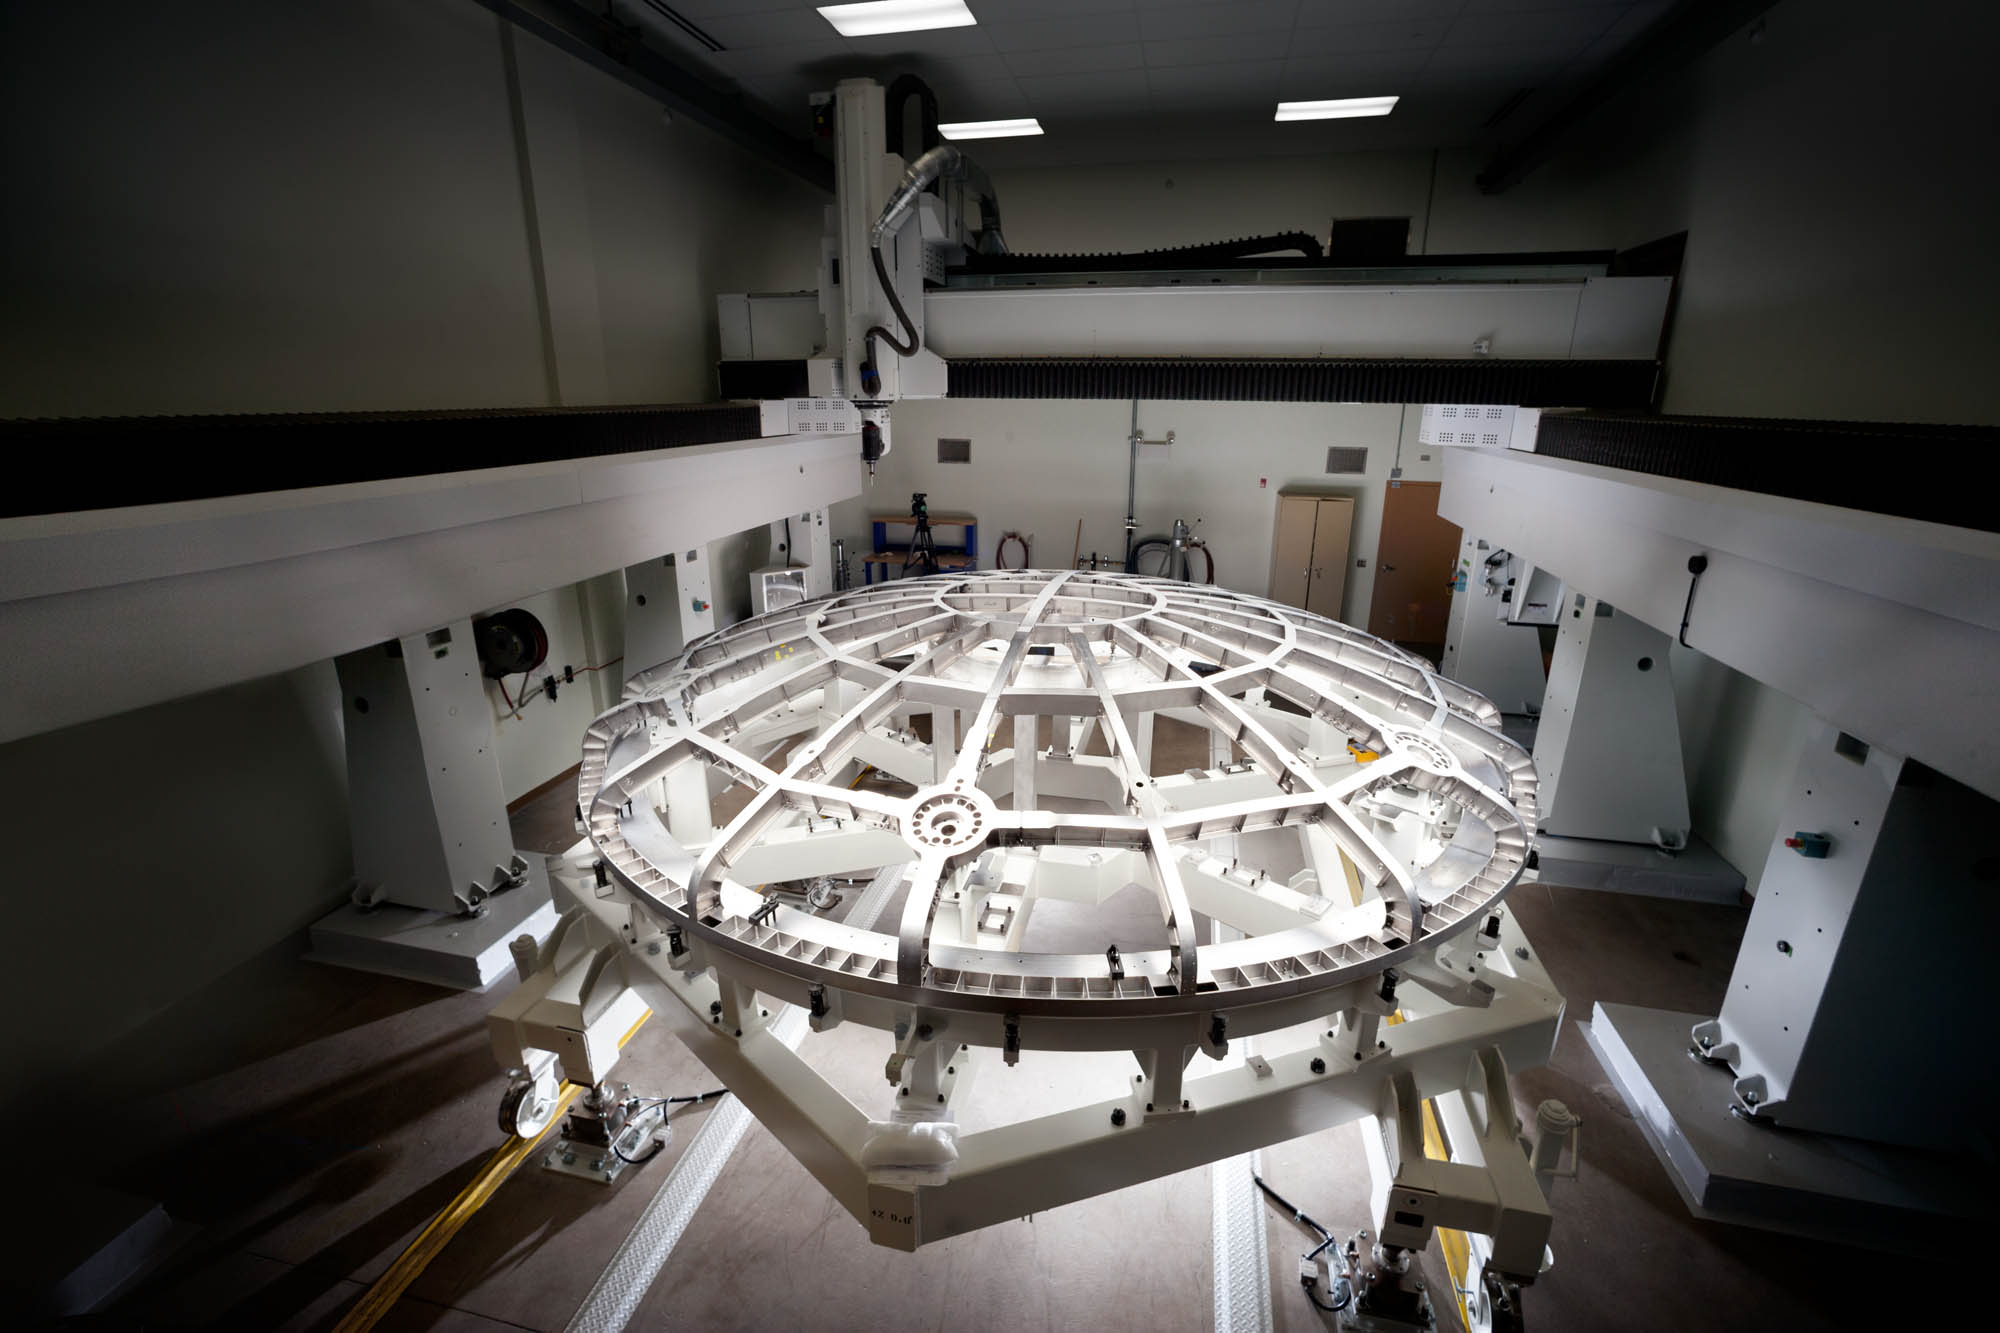 The 16.5 ft. diameter, titanium heat shield was fabricated by Lockheed Martin in Denver for the Orion spacecraft. The shield will have to withstand temperatures of 4,000 degrees Fahrenheit.